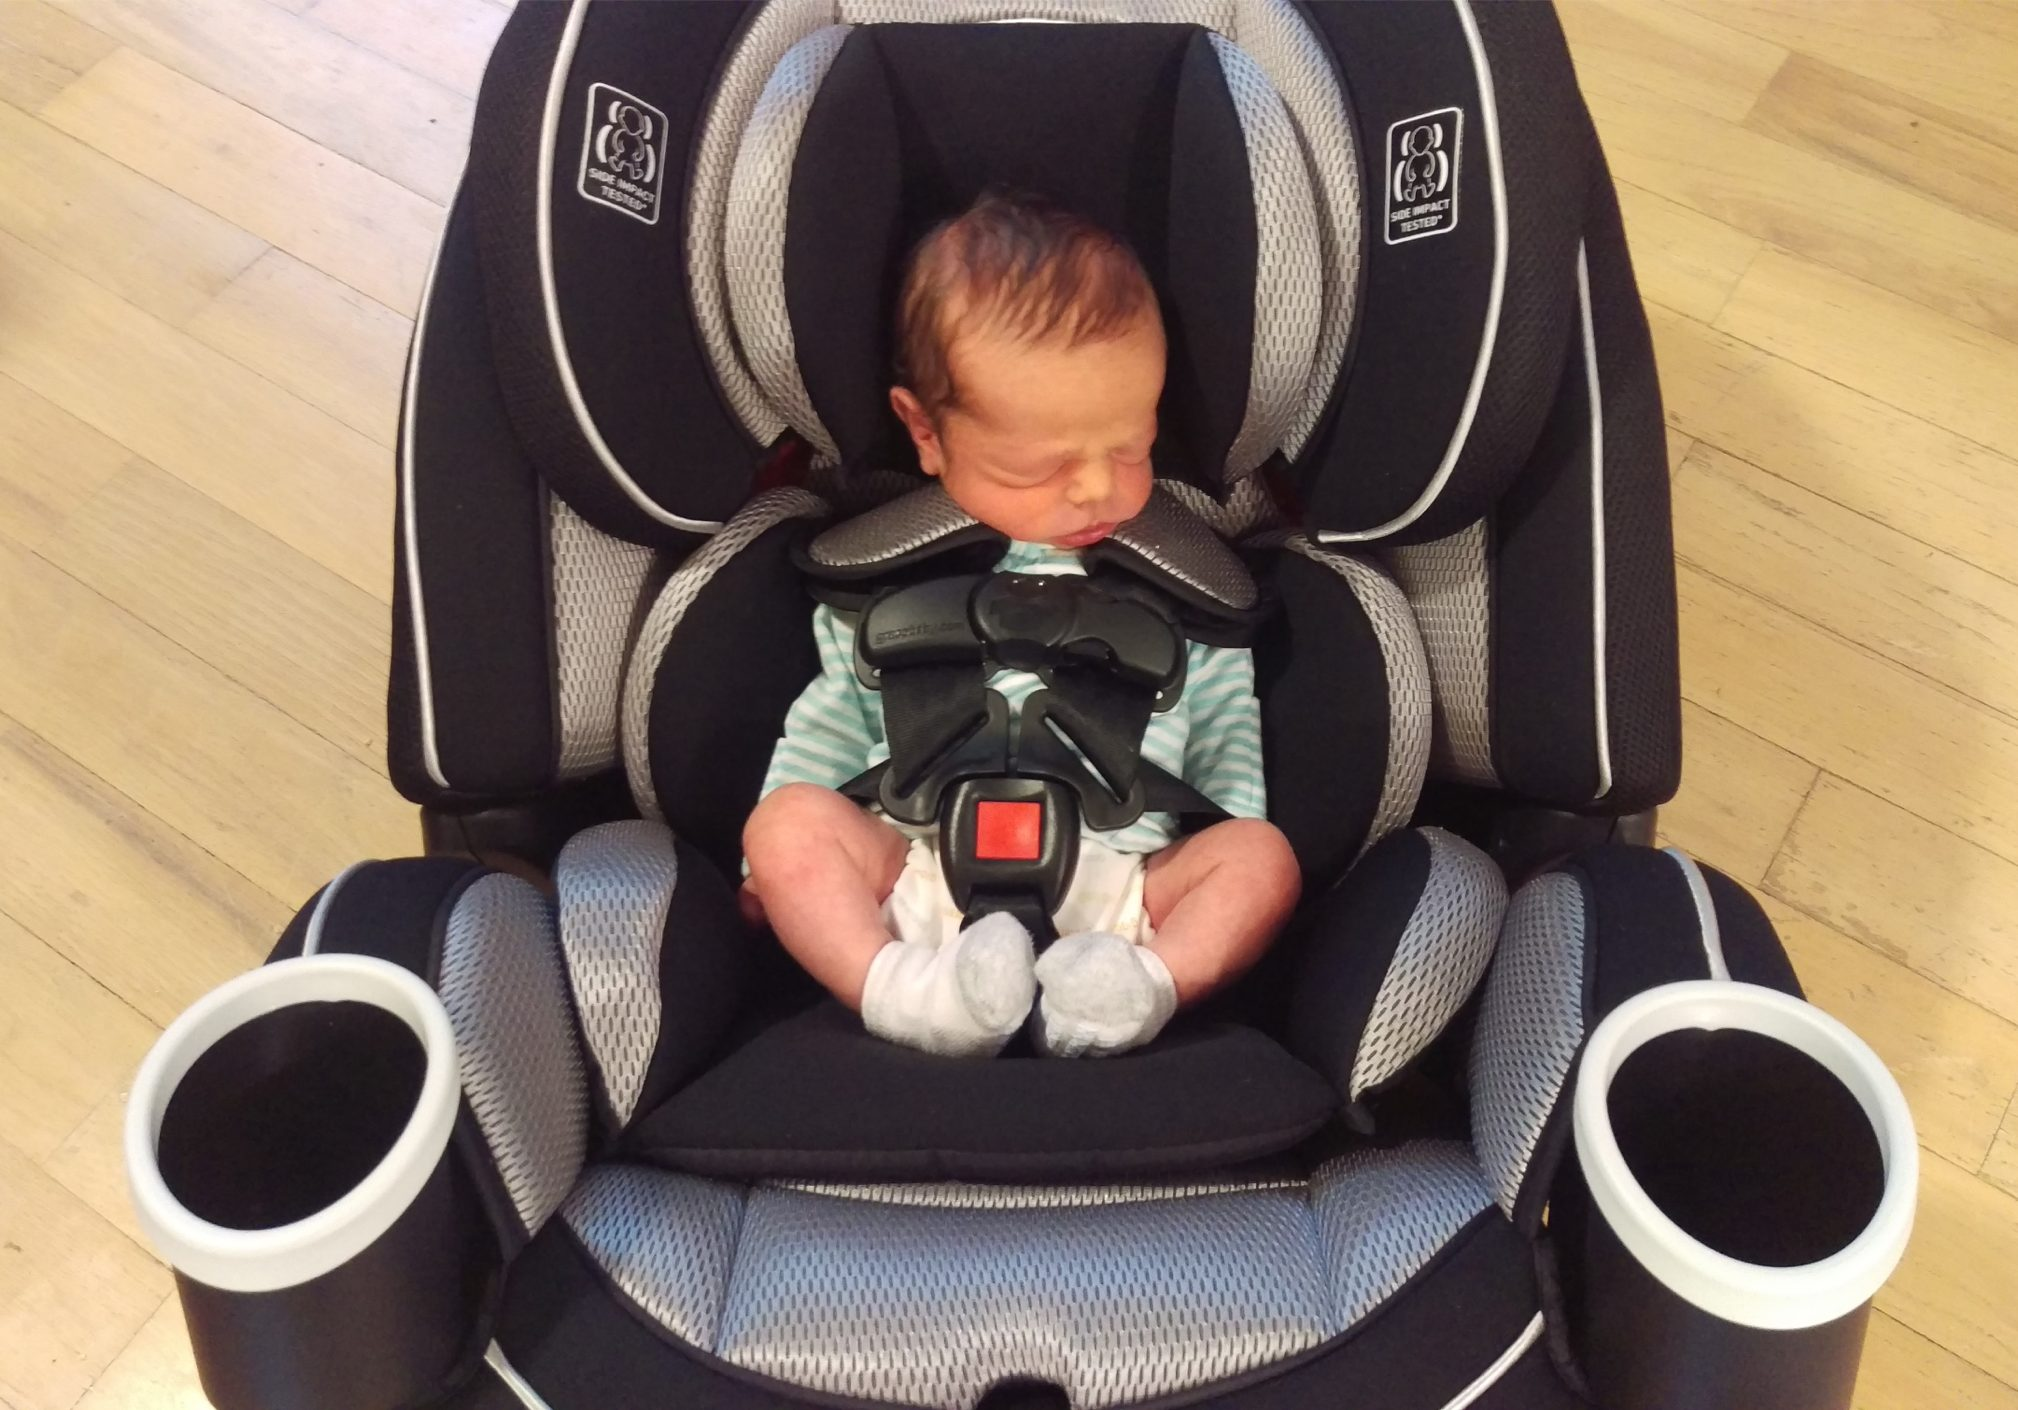 Using Convertible Car Seat for a Newborn